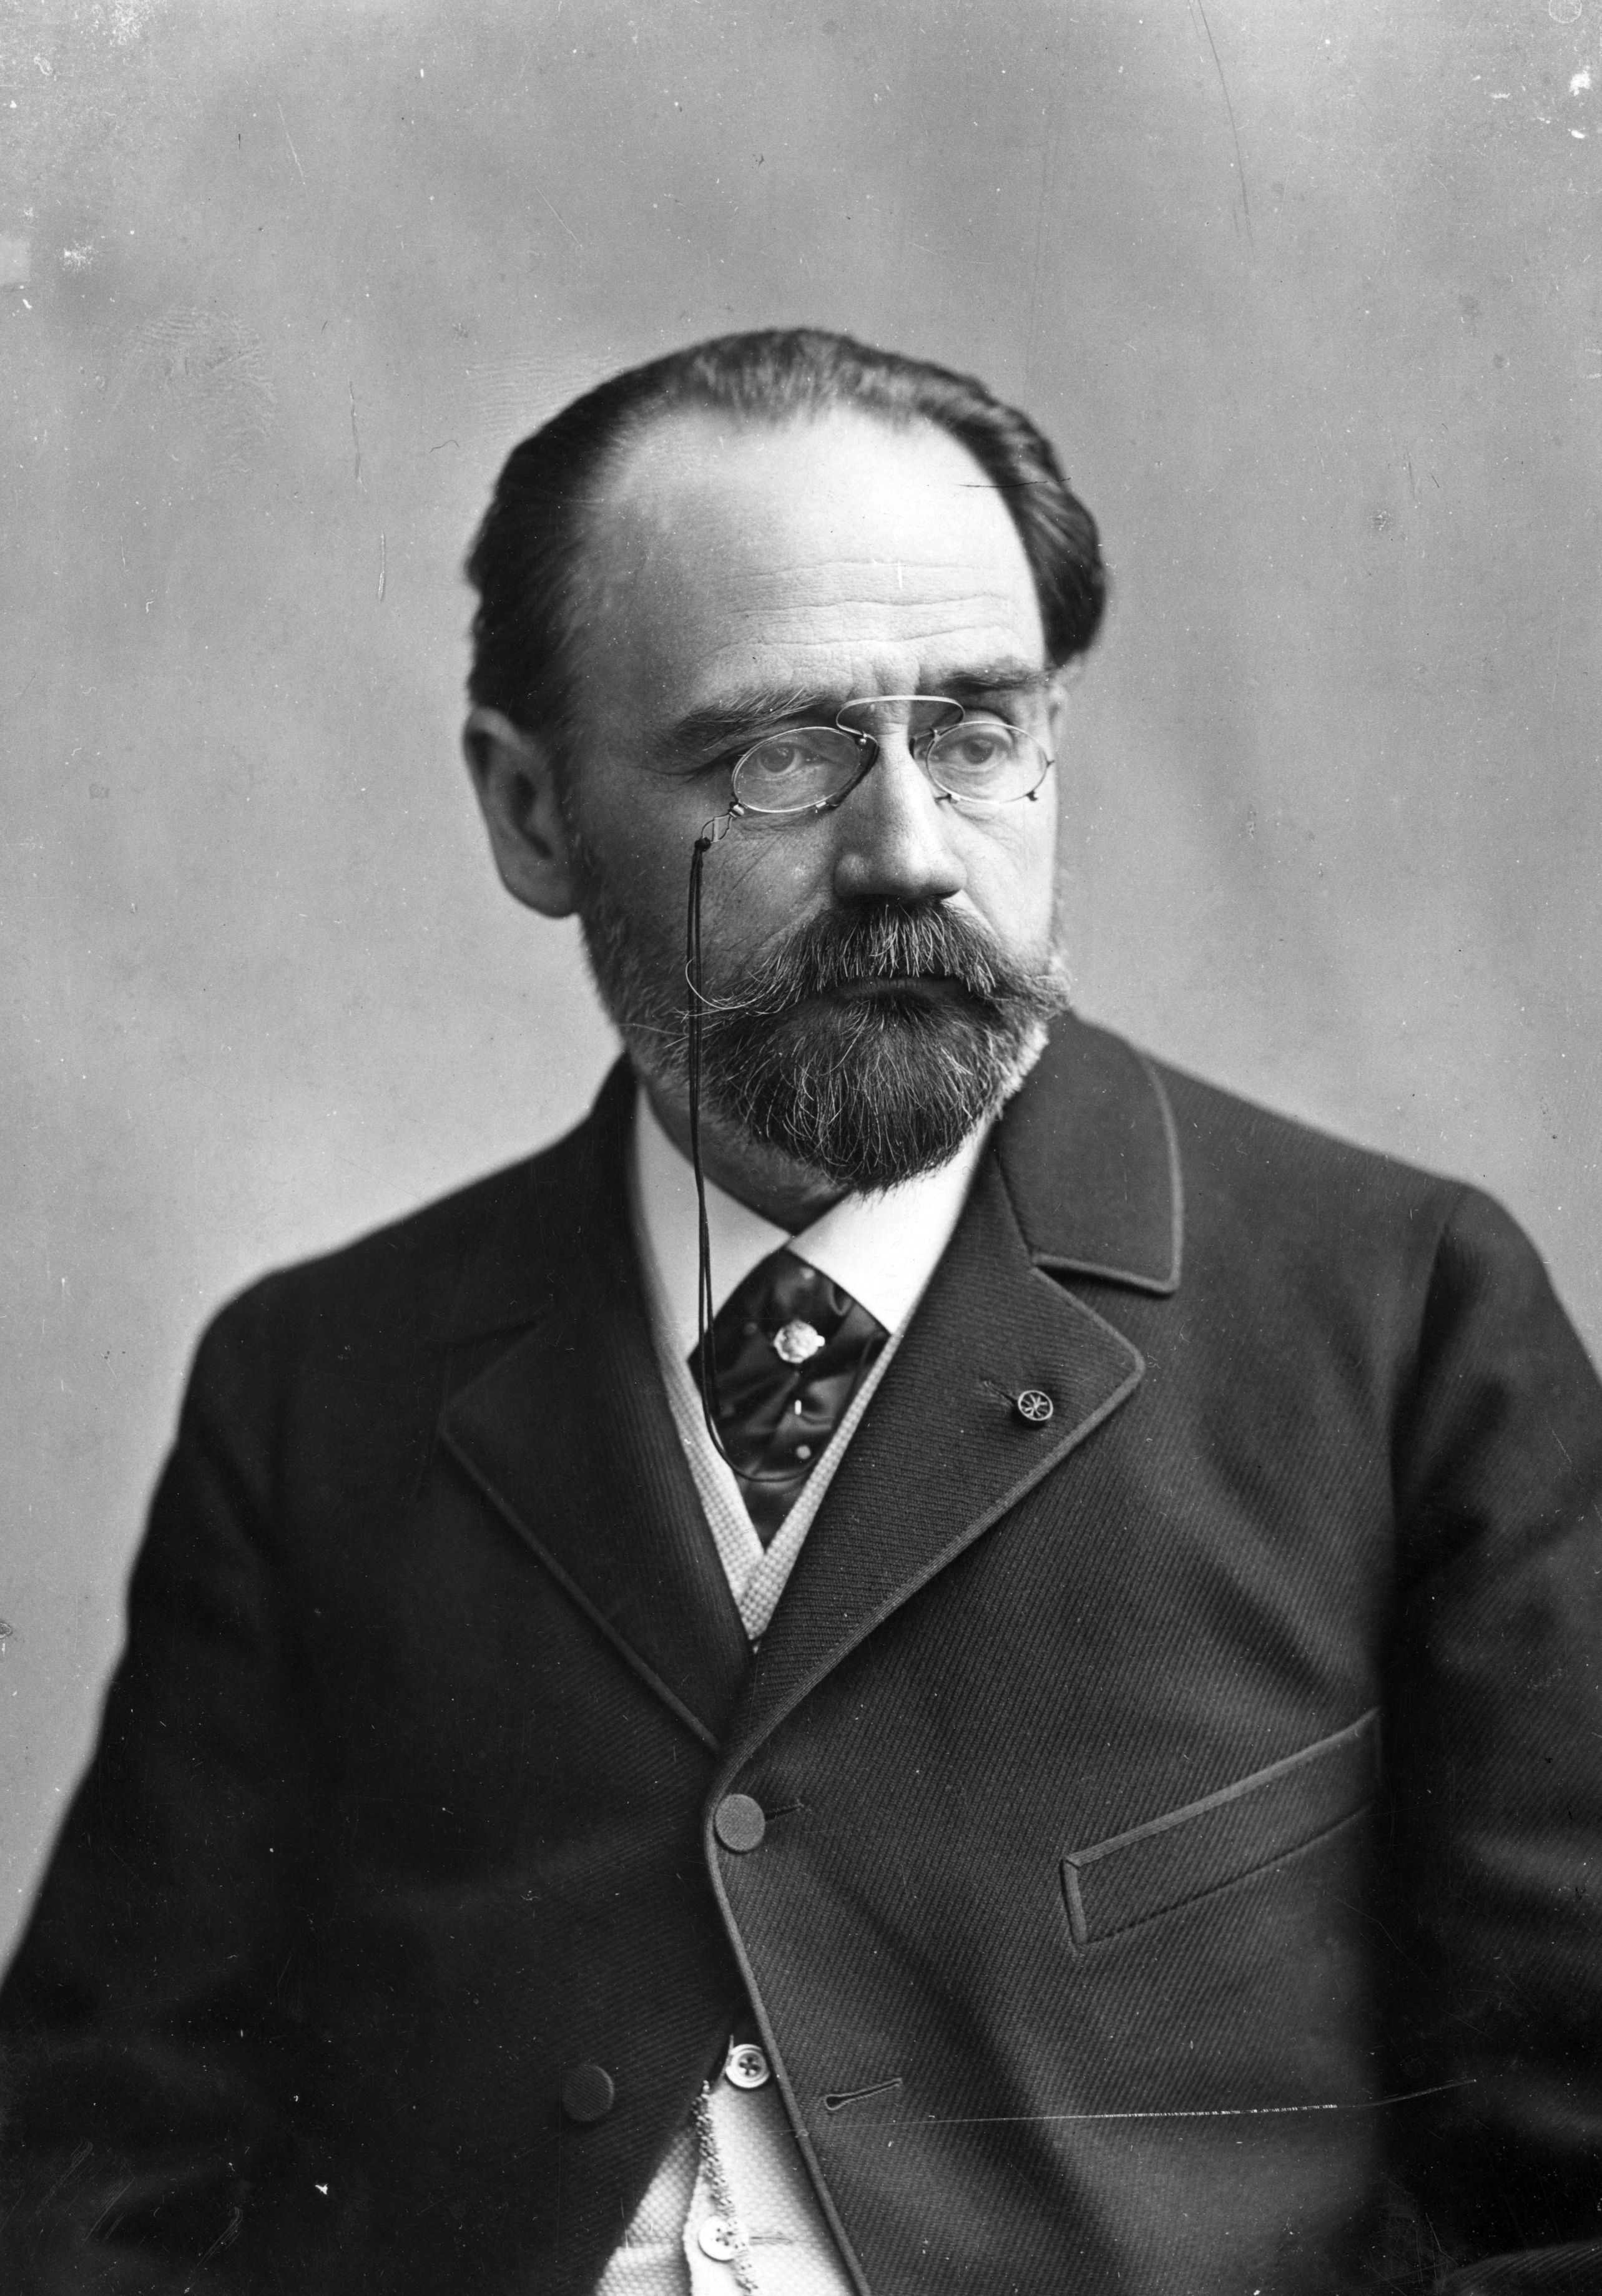 1902 portrait of Emile Zola with quote poster